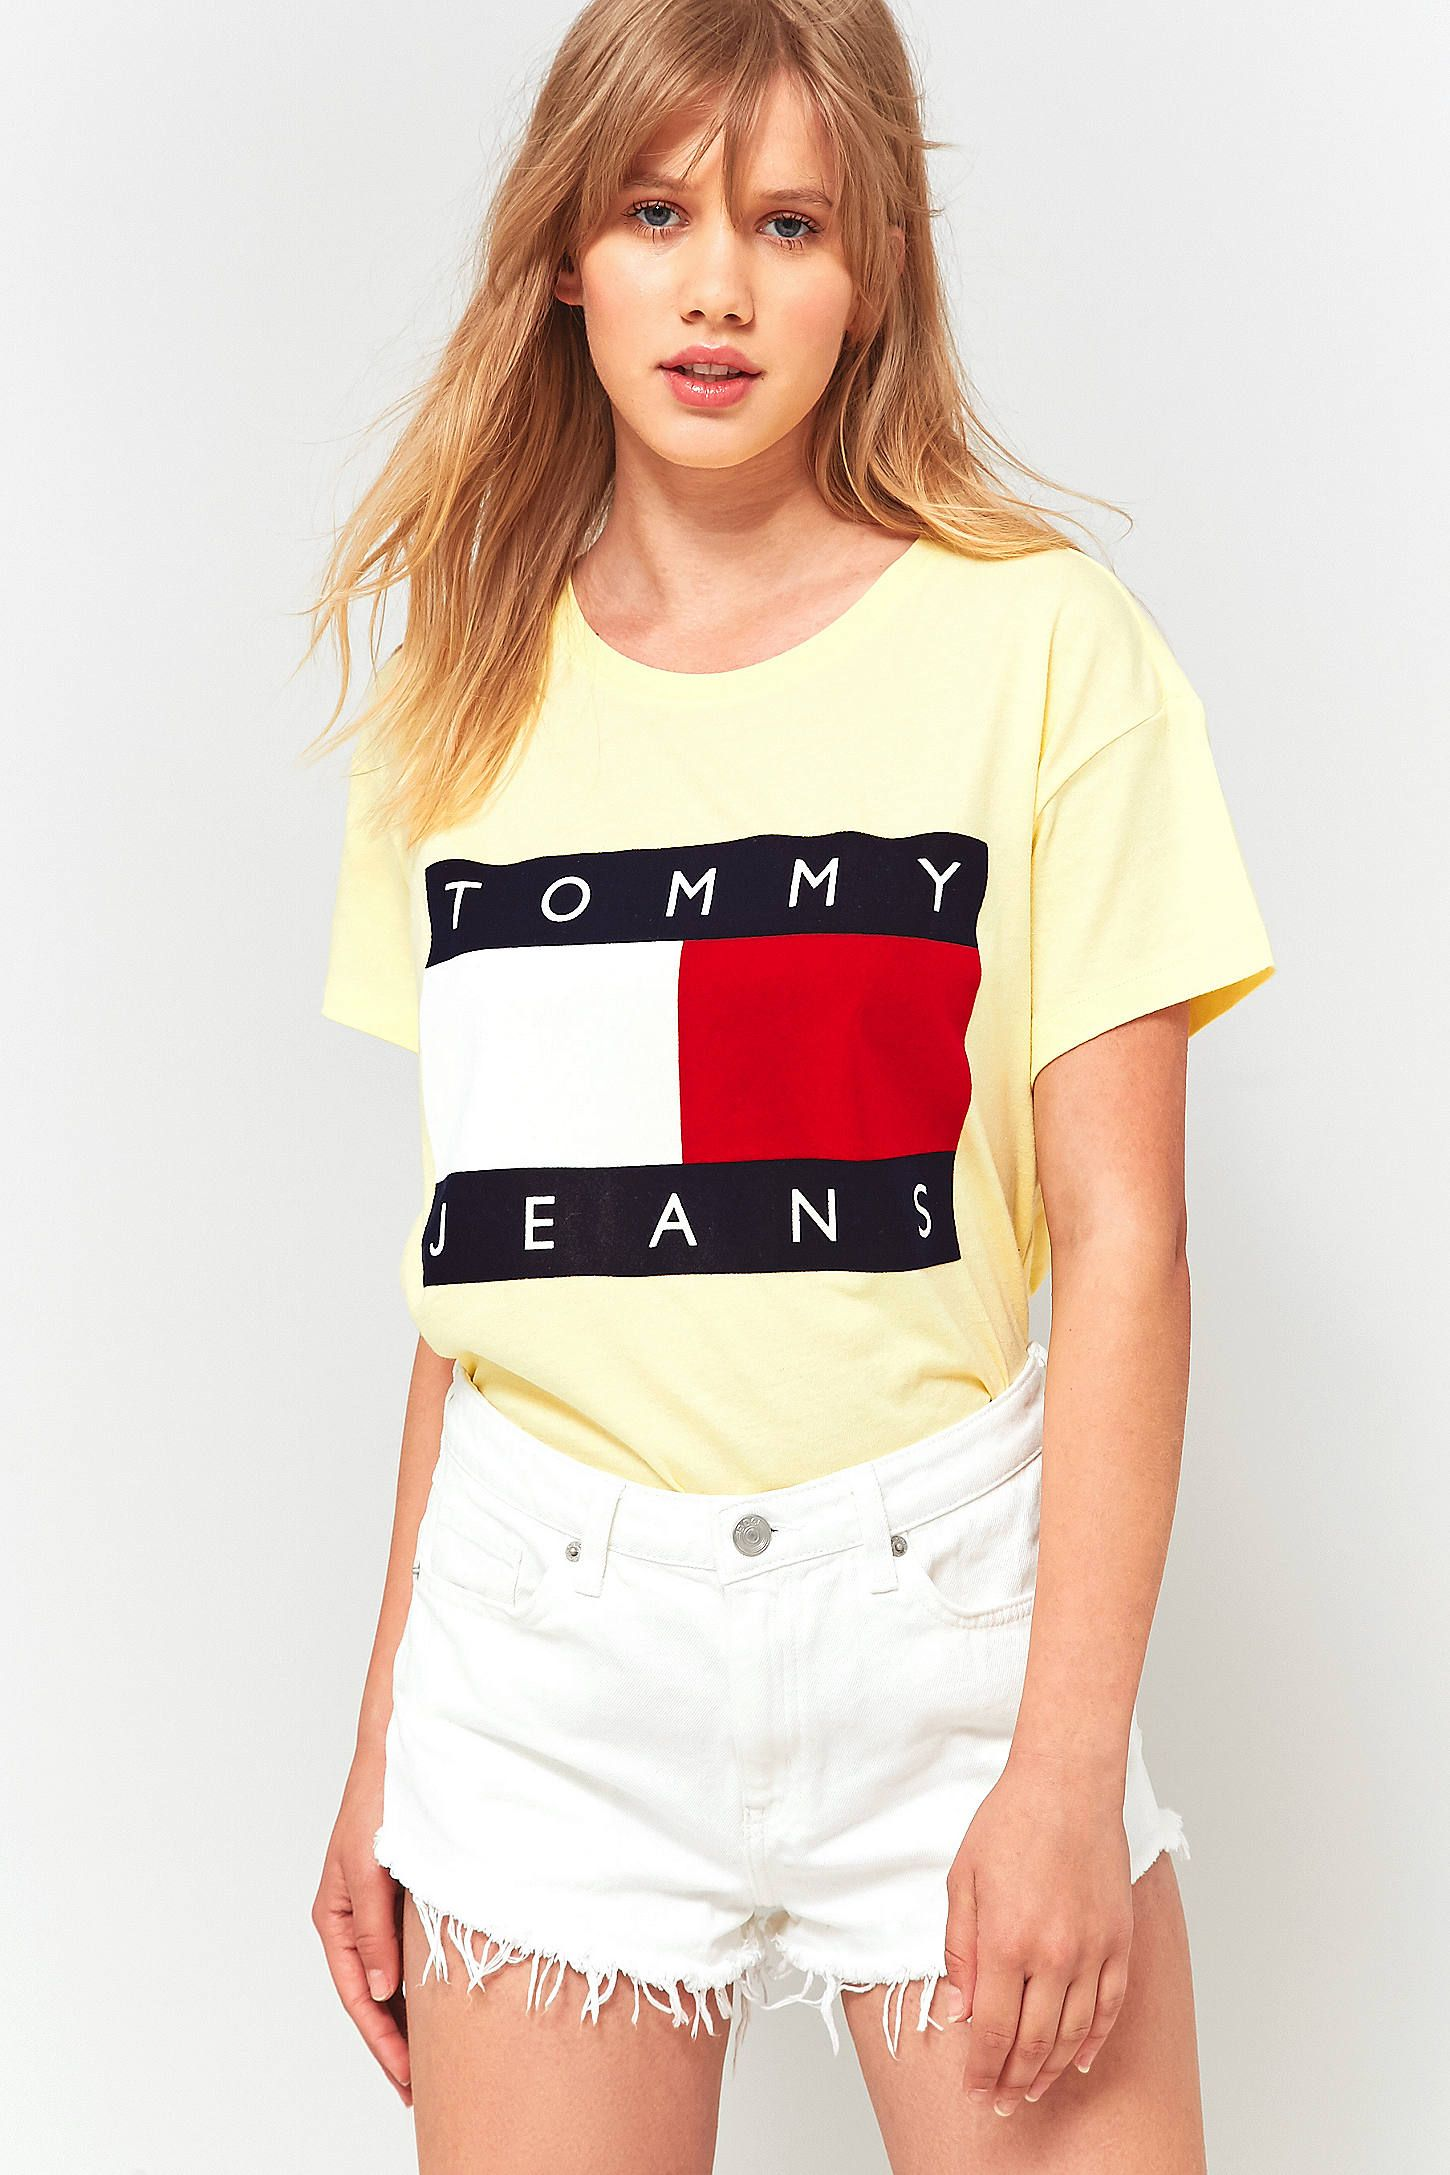 3ddcdac8388b1a Slide View  1  Tommy Hilfiger  90s Yellow Logo T-Shirt